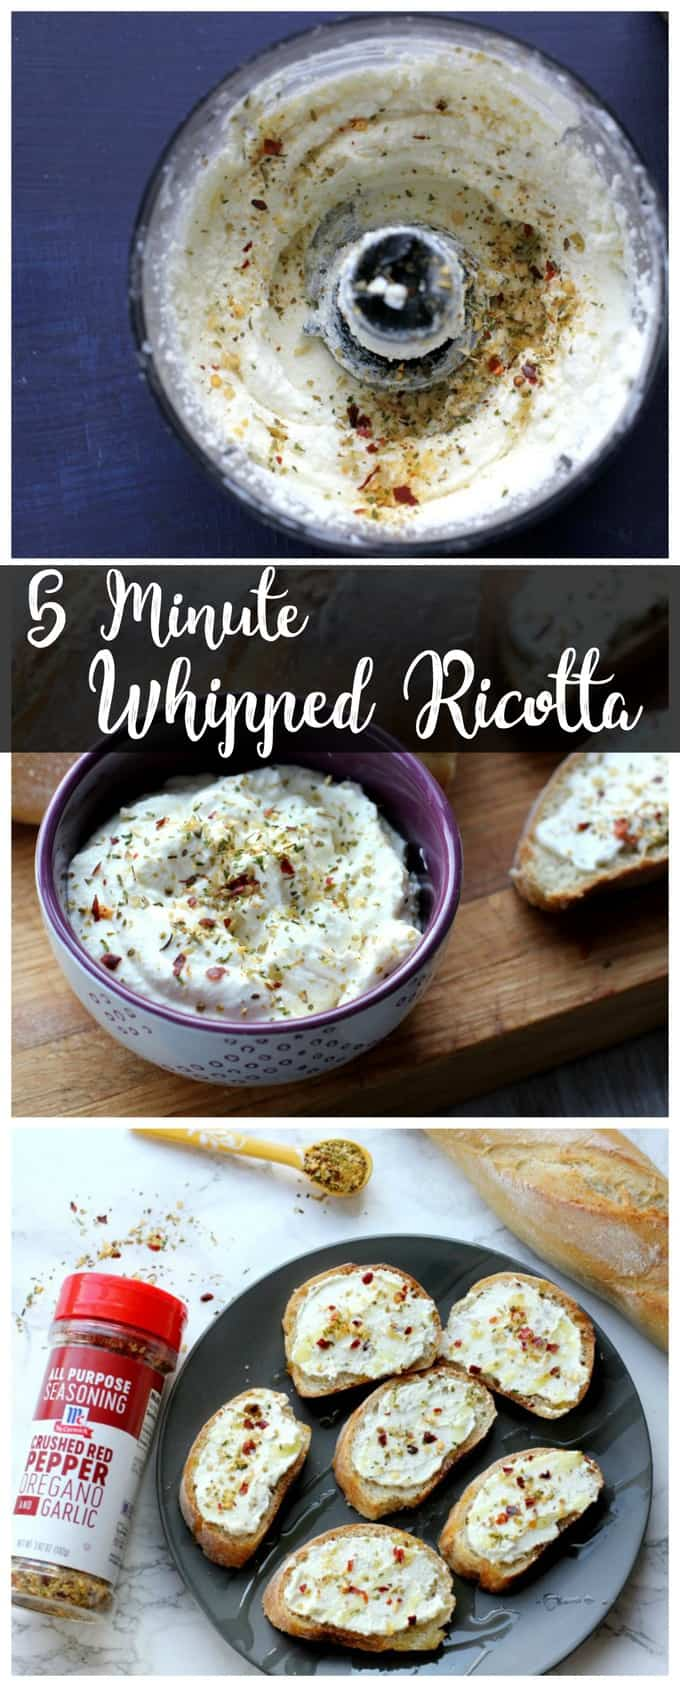 This 5 minute whipped ricotta is a quick and easy appetizer! It\'s perfect spread on a slice of a crusty baguette!